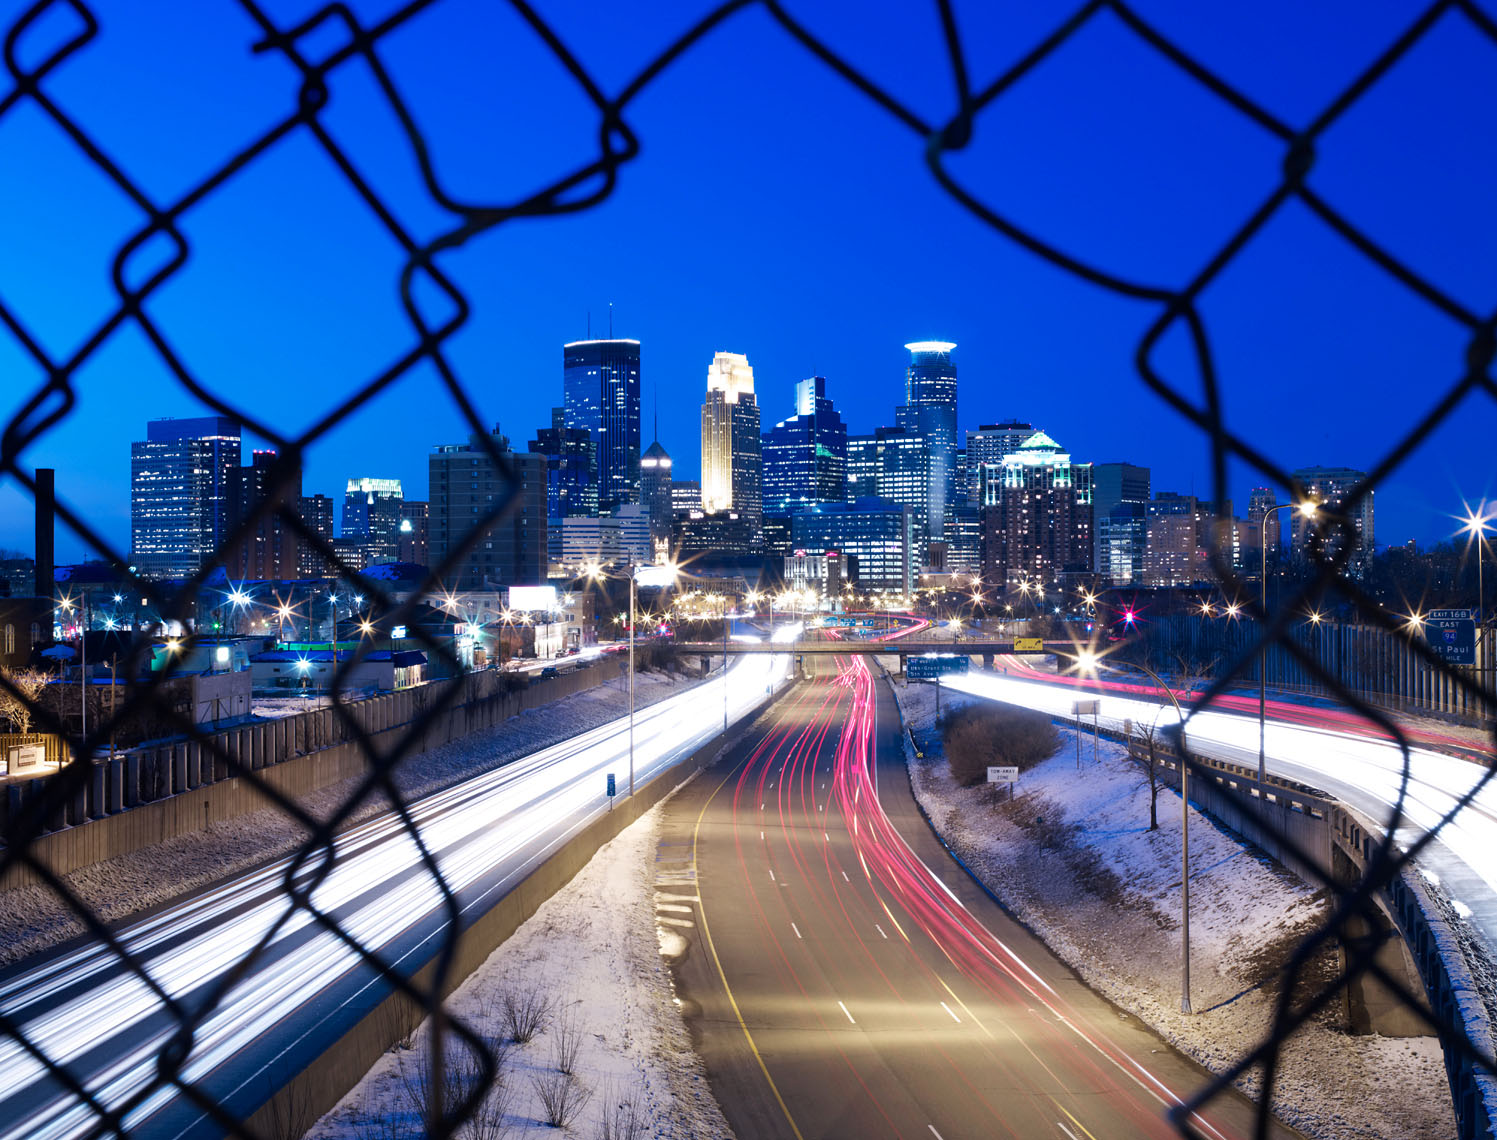 Minneapolis skyline from highway at night winter landscape